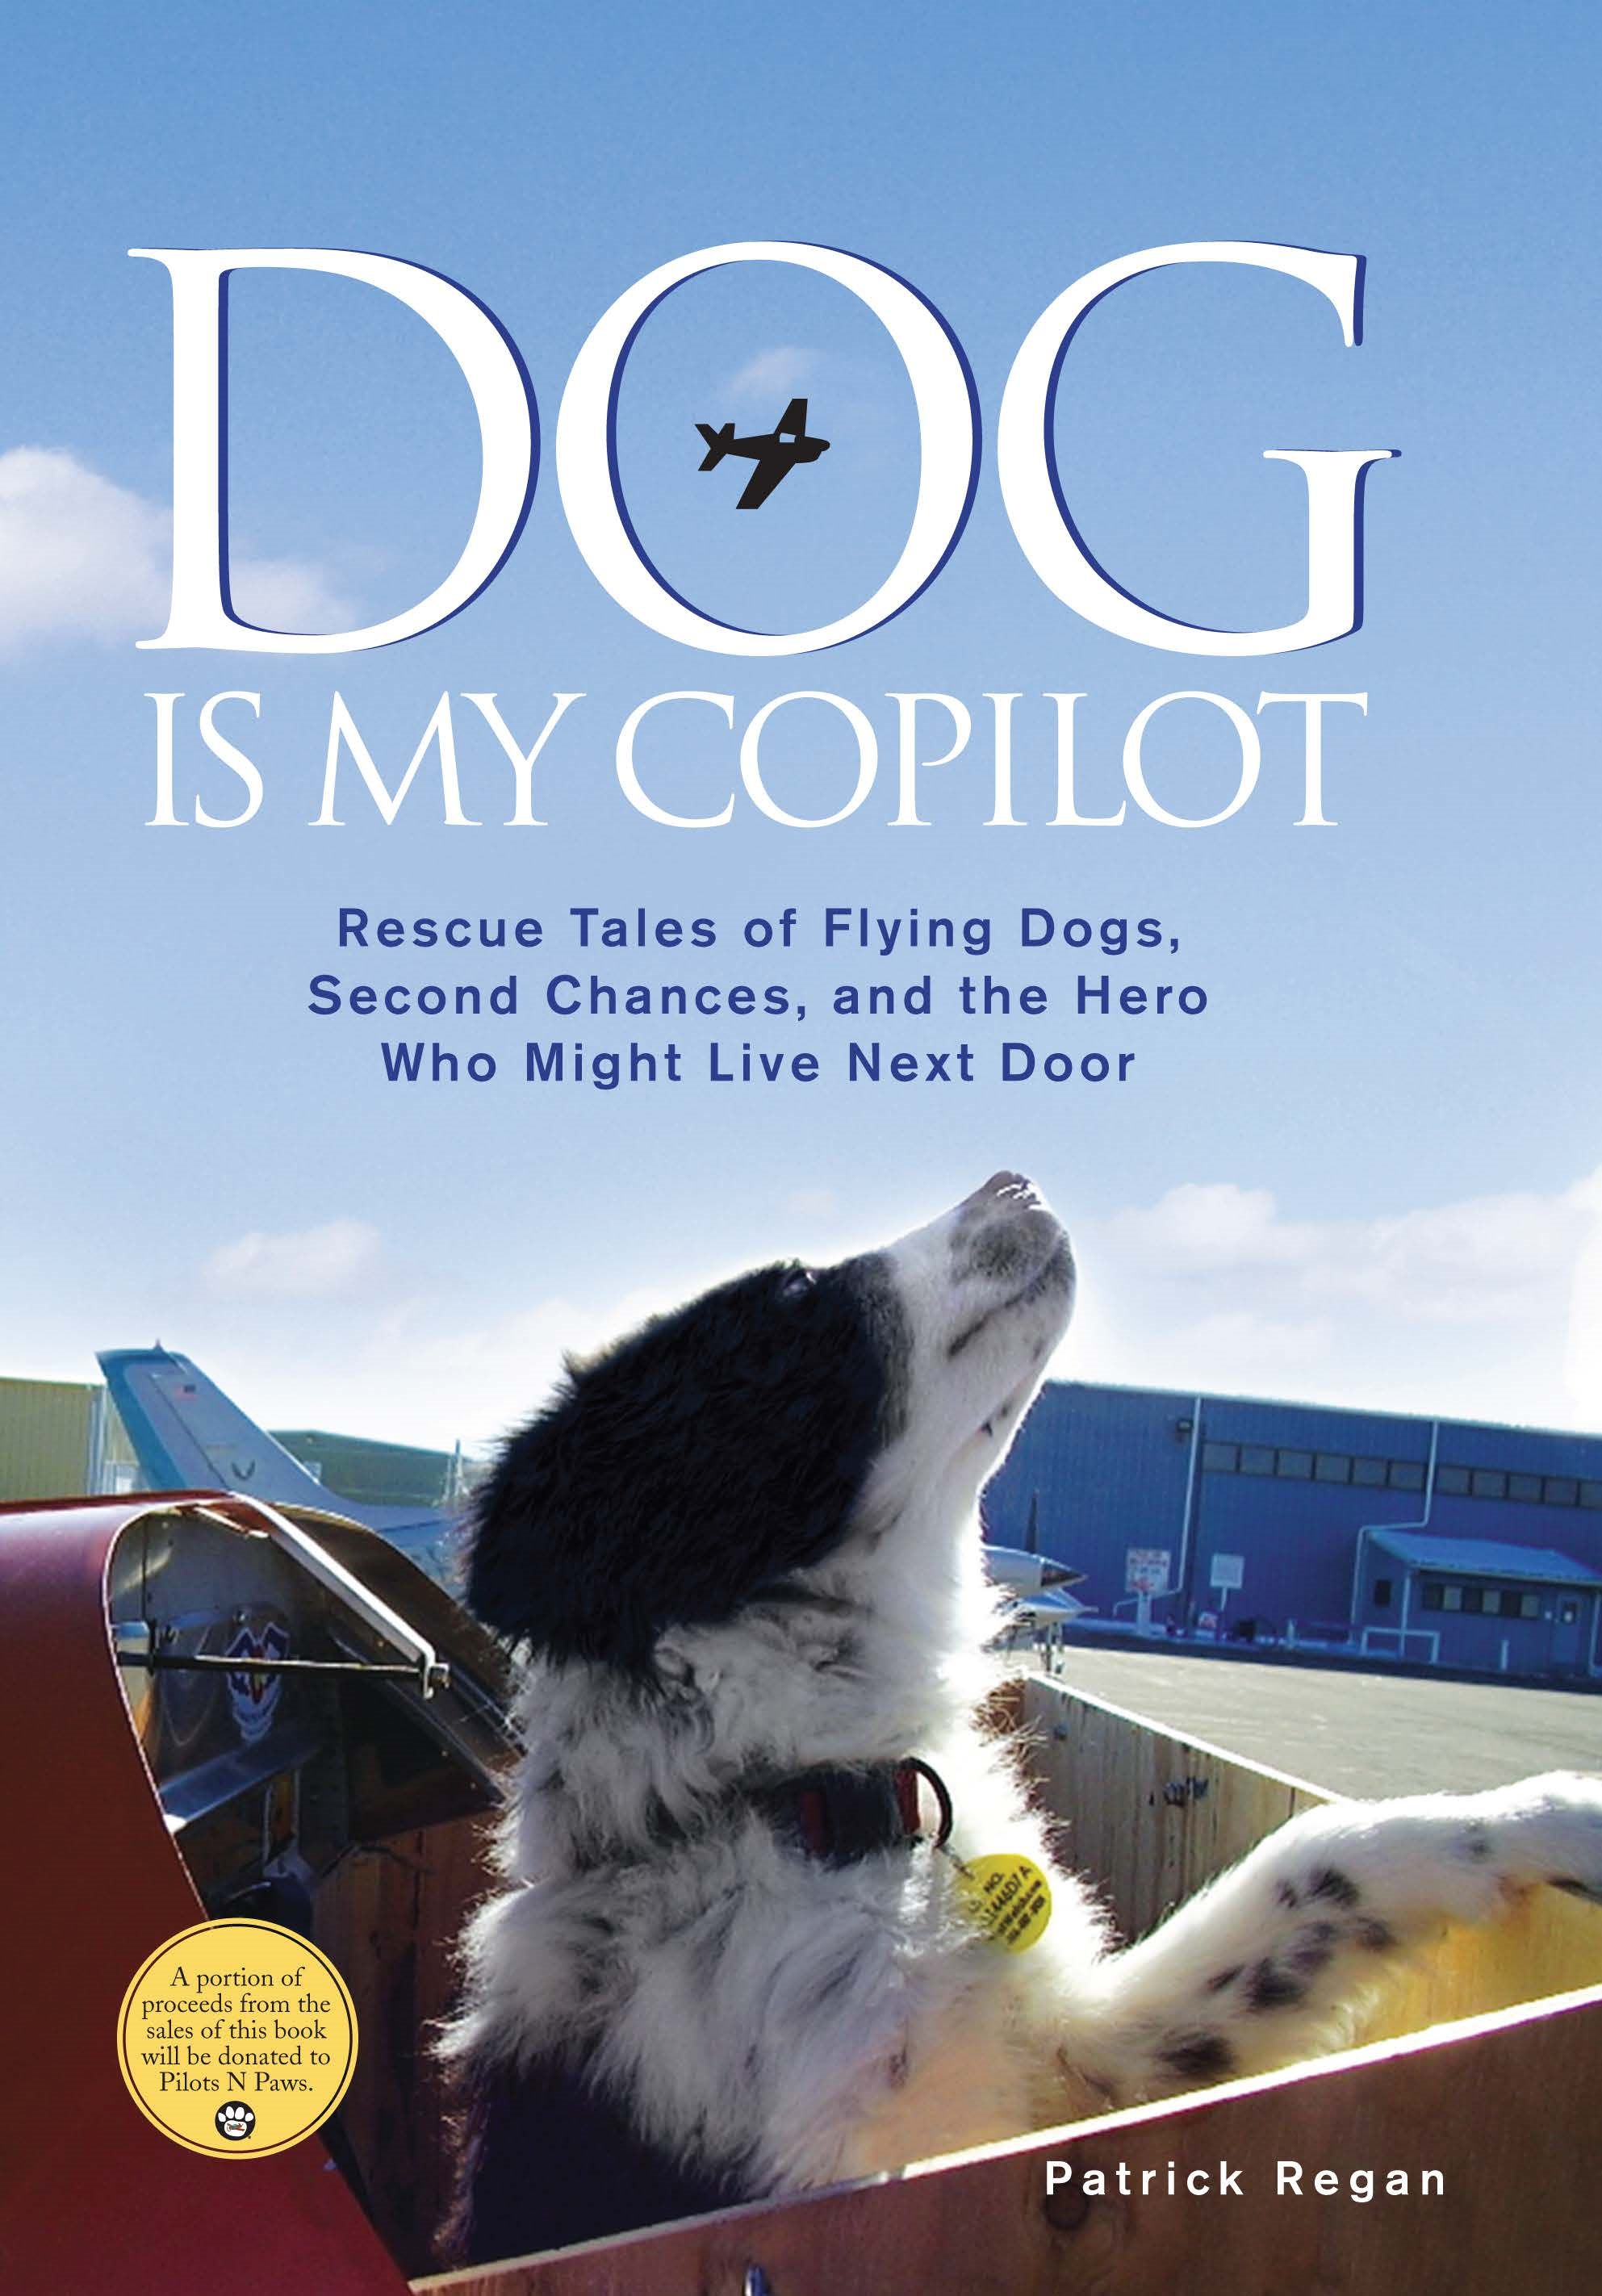 Dog Is My Copilot: Rescue Tales of Flying Dogs, Second Chances, and the Hero Who Might Live Next Door By: Patrick Regan